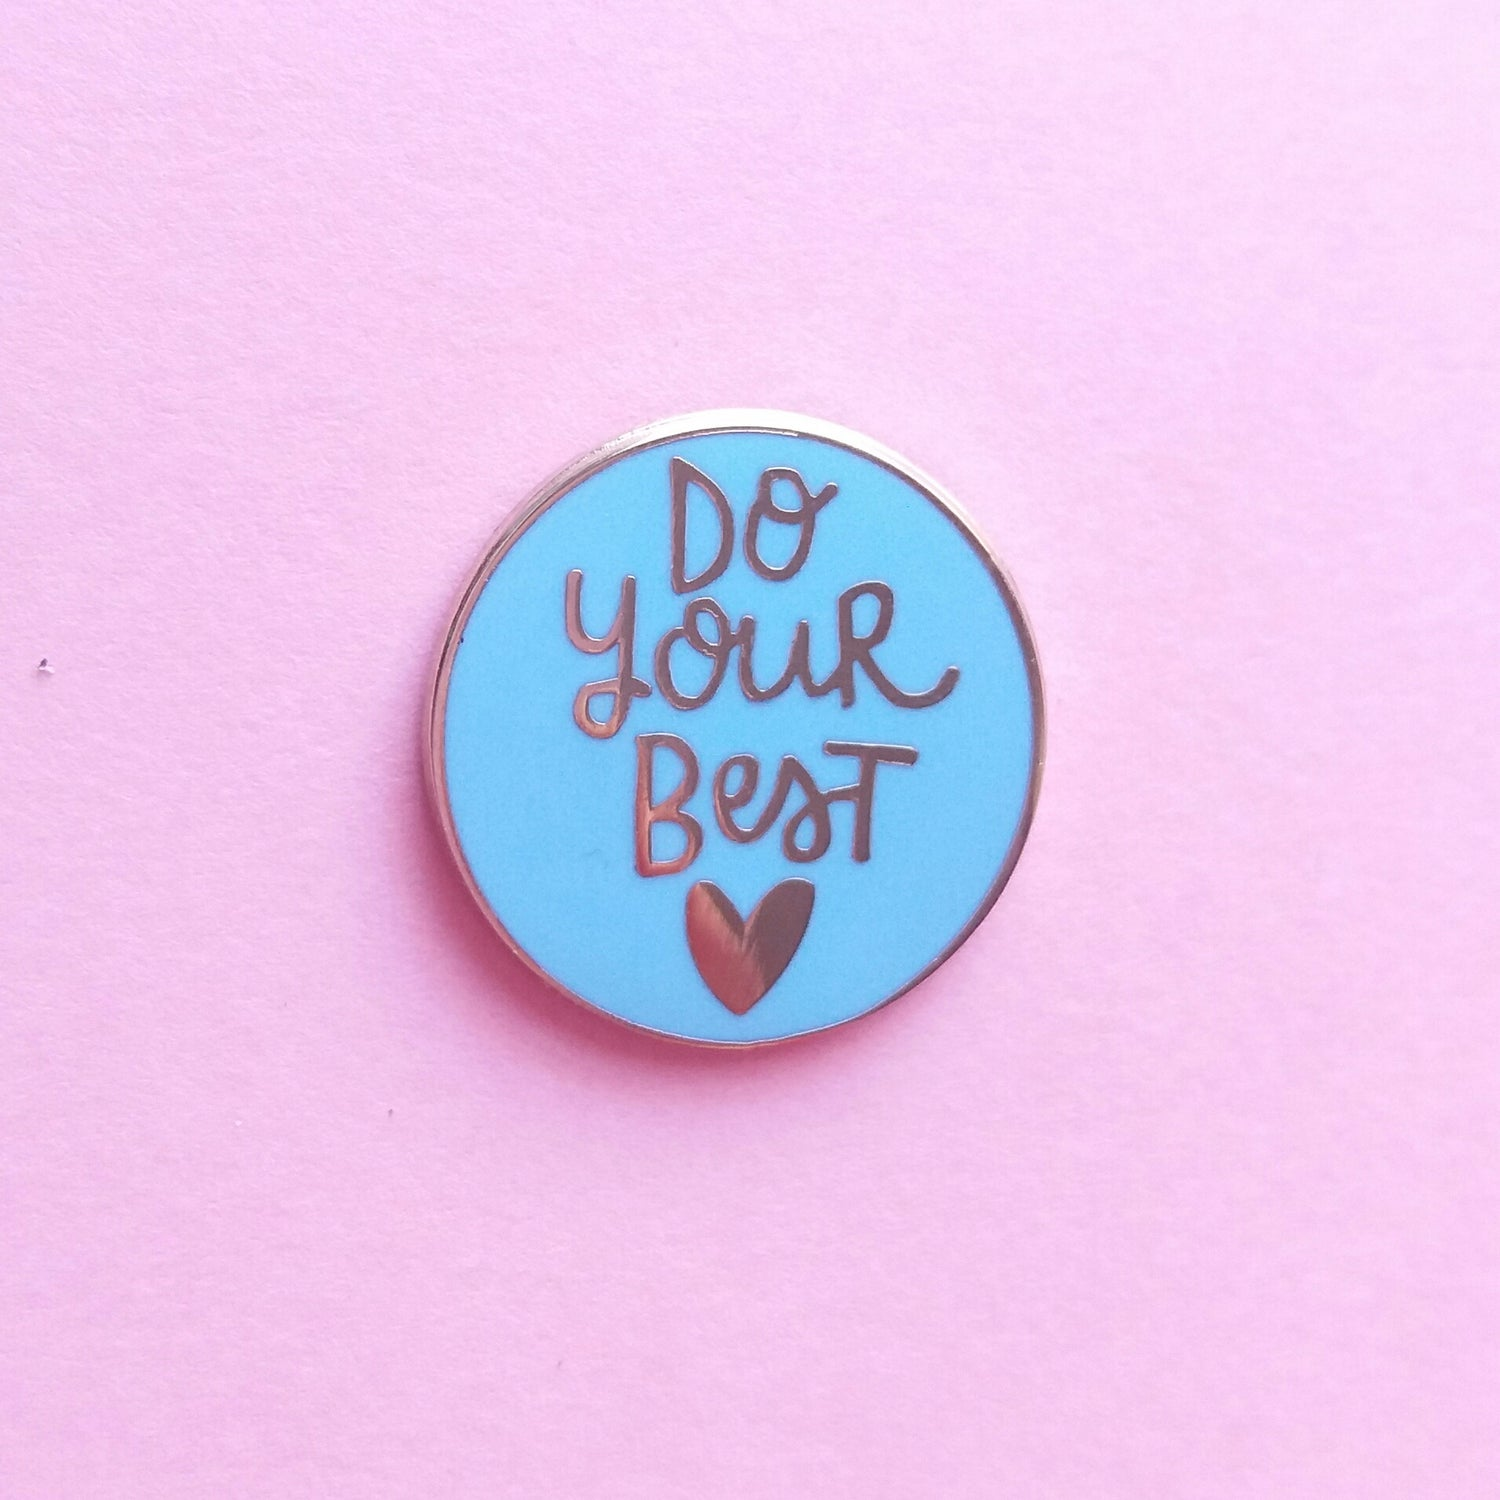 Image of Do Your Best - Motivational Hard Enamel Pin